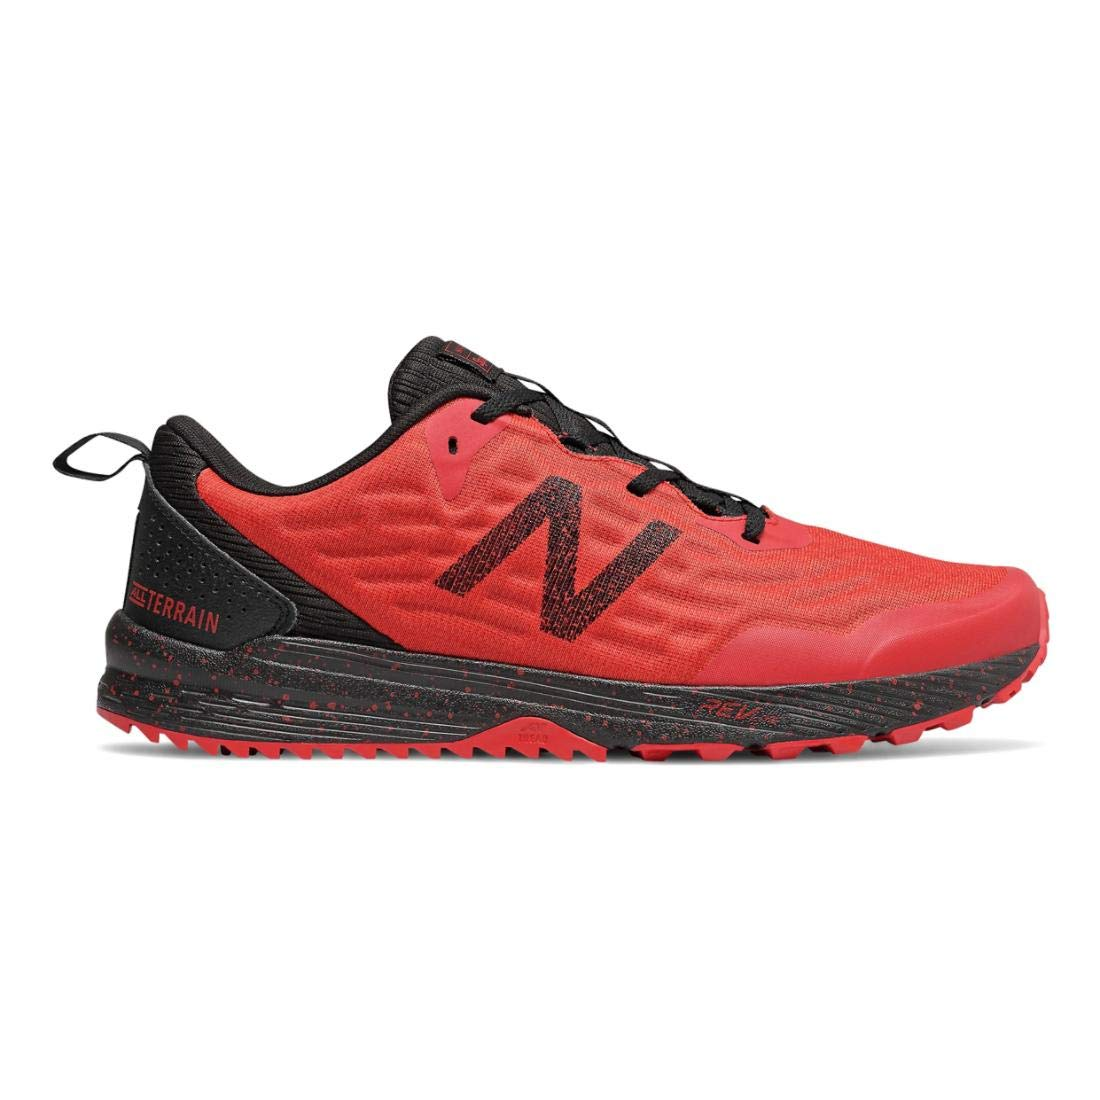 New Balance Men's Nitrel V3 Soccer Shoe, RED/Black, 12 D US by New Balance